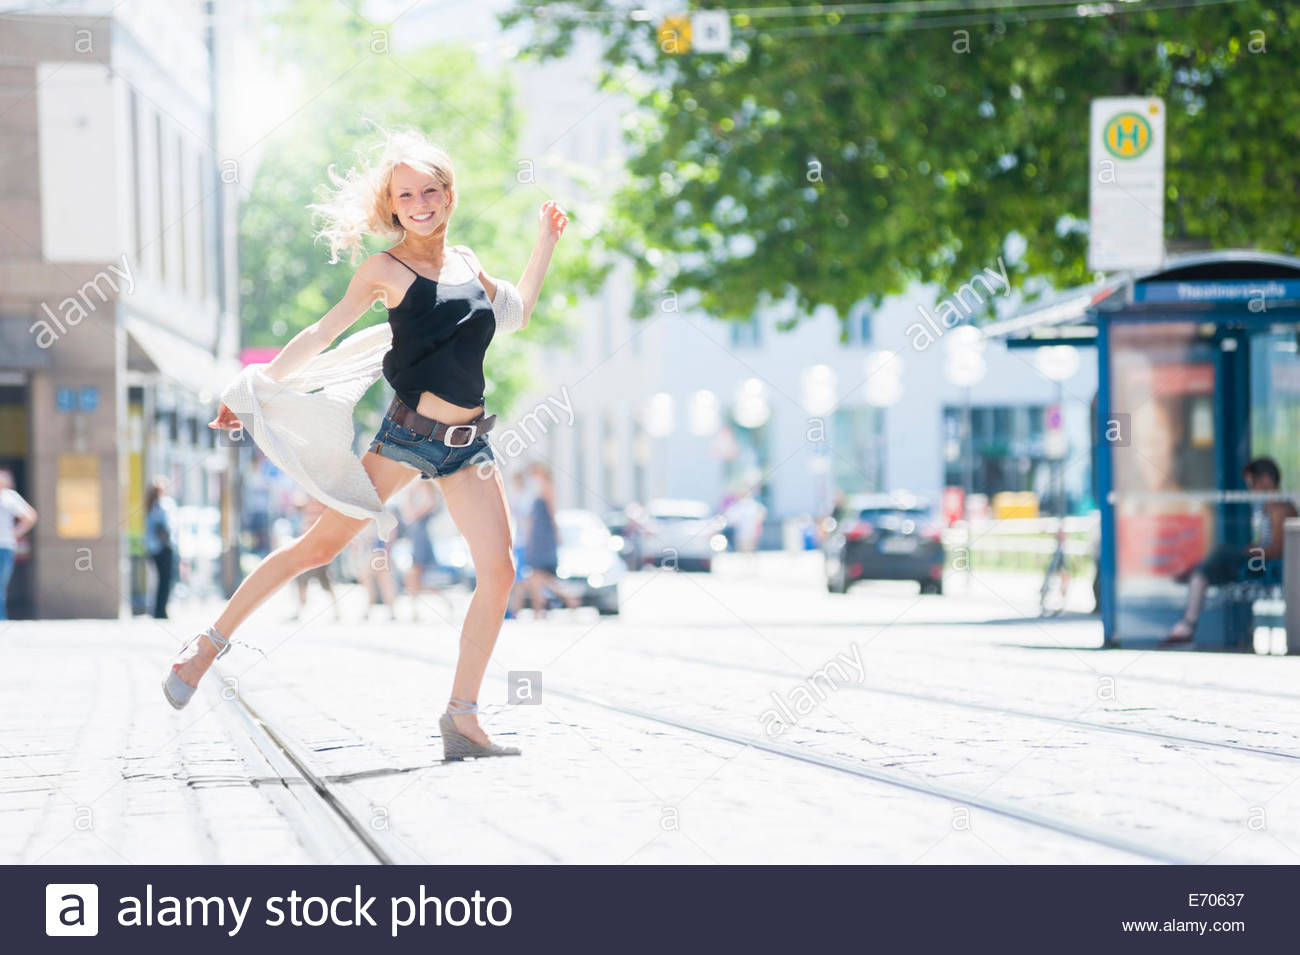 Confident young woman dancing on city street - Stock Image